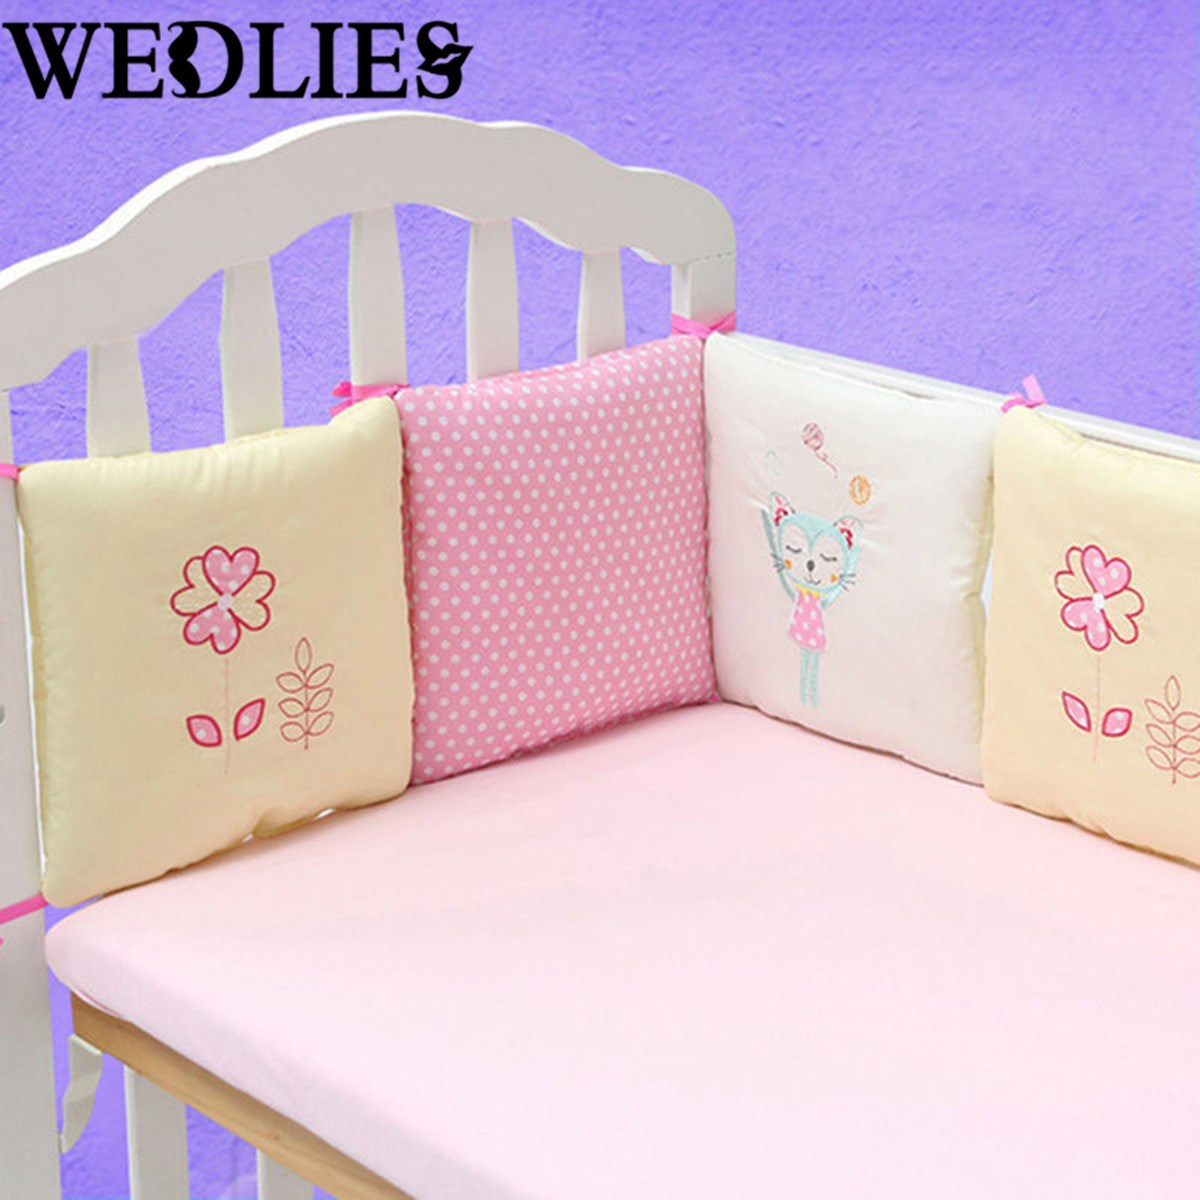 Crib bumper for sale philippines - 6pcs Lot Baby Infant Cot Crib Cushion Pad Bumper Safety Protector Toddler Nursery Bedding Set